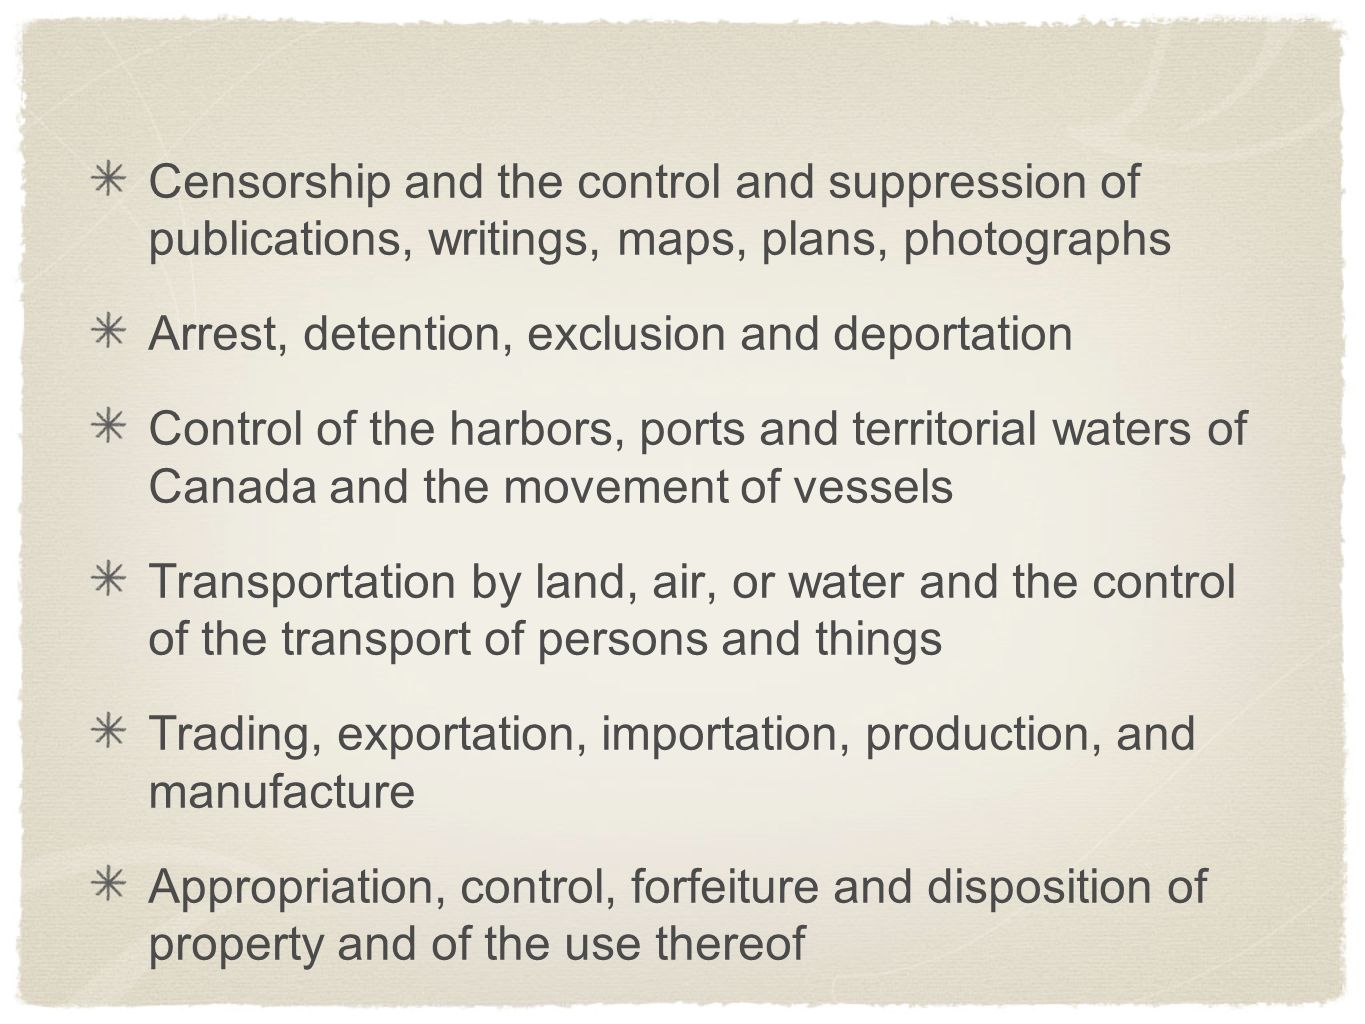 Censorship and the control and suppression of publications, writings, maps, plans, photographs Arrest, detention, exclusion and deportation Control of